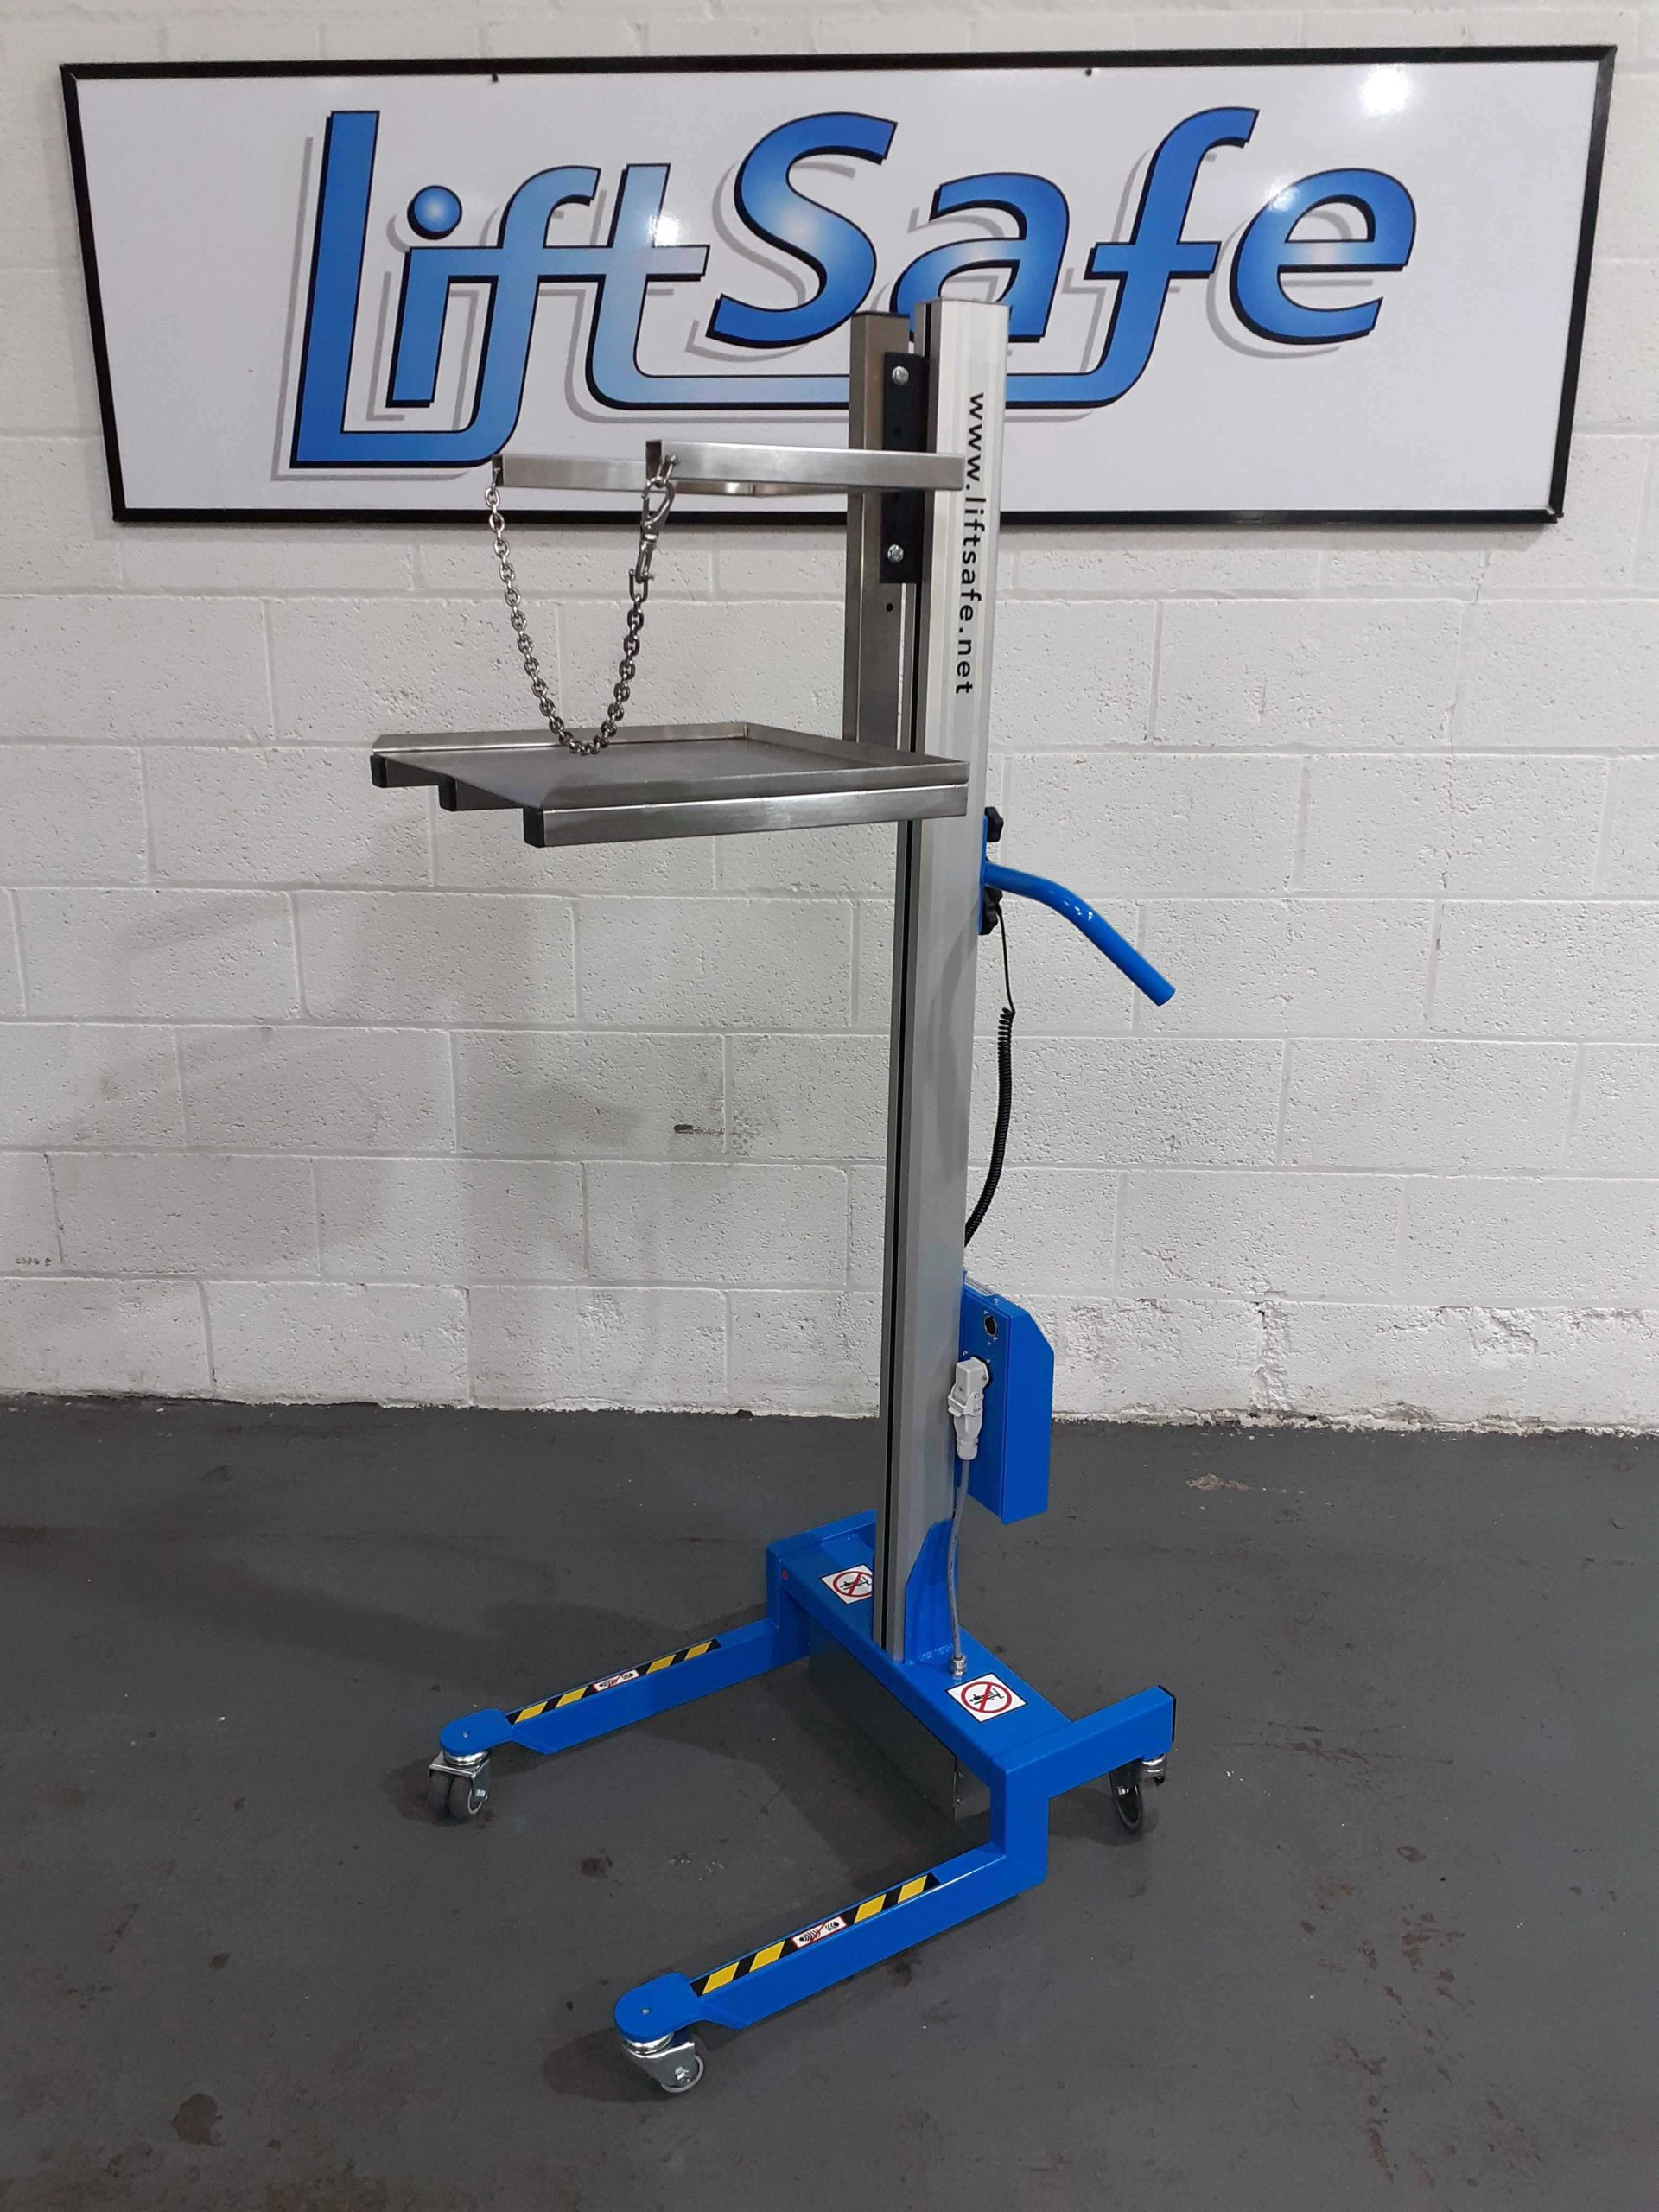 Fit For Purpose Attachment Designed For Reseller